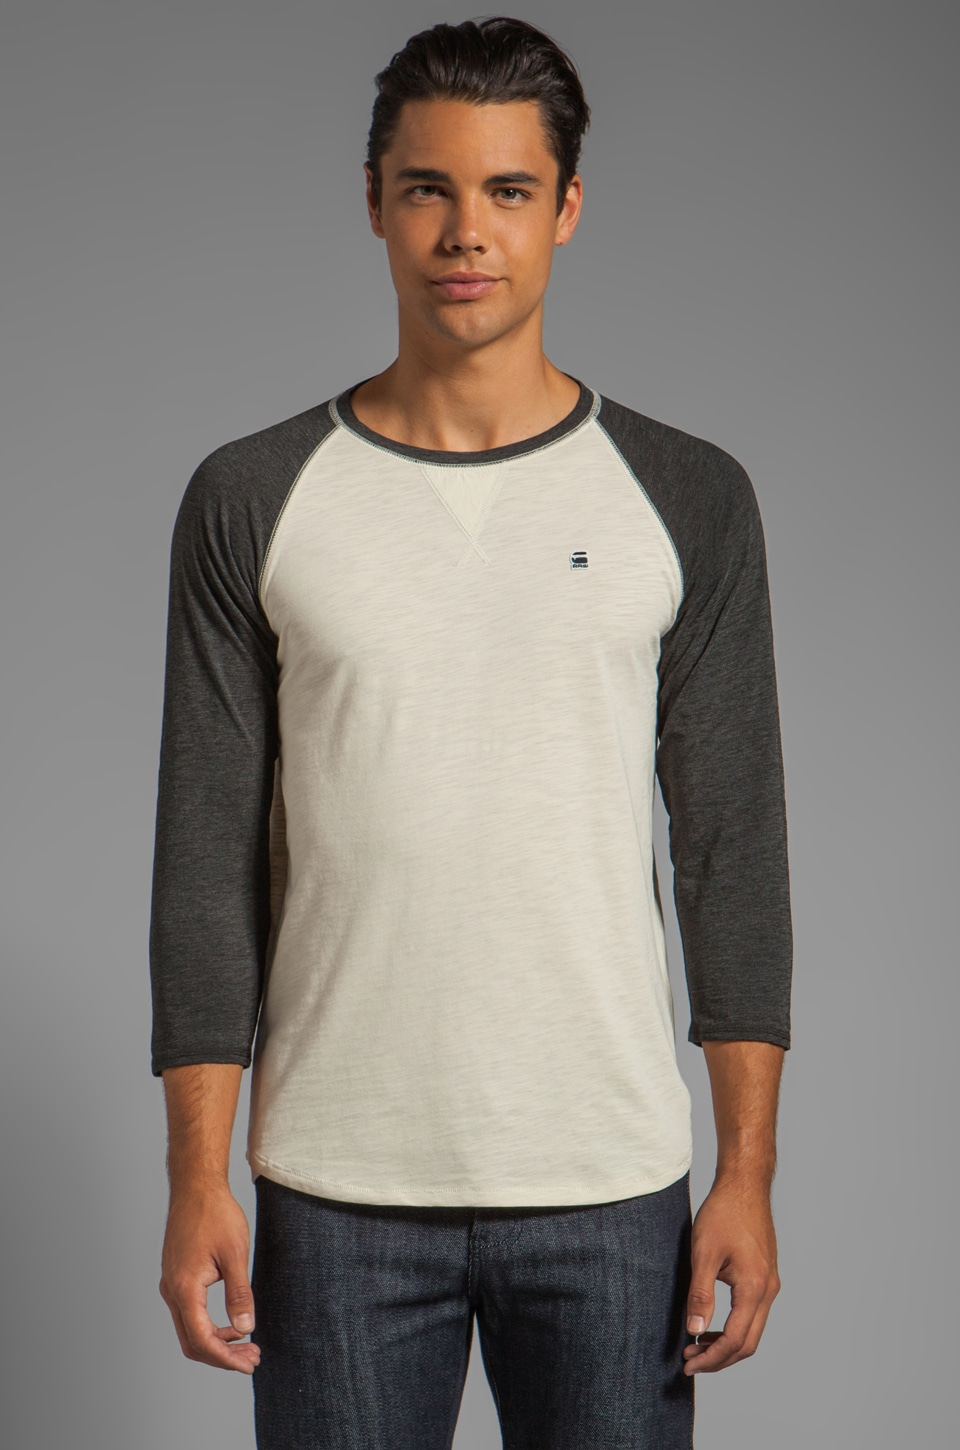 G-Star Correct Saul Baseball Tee in Black